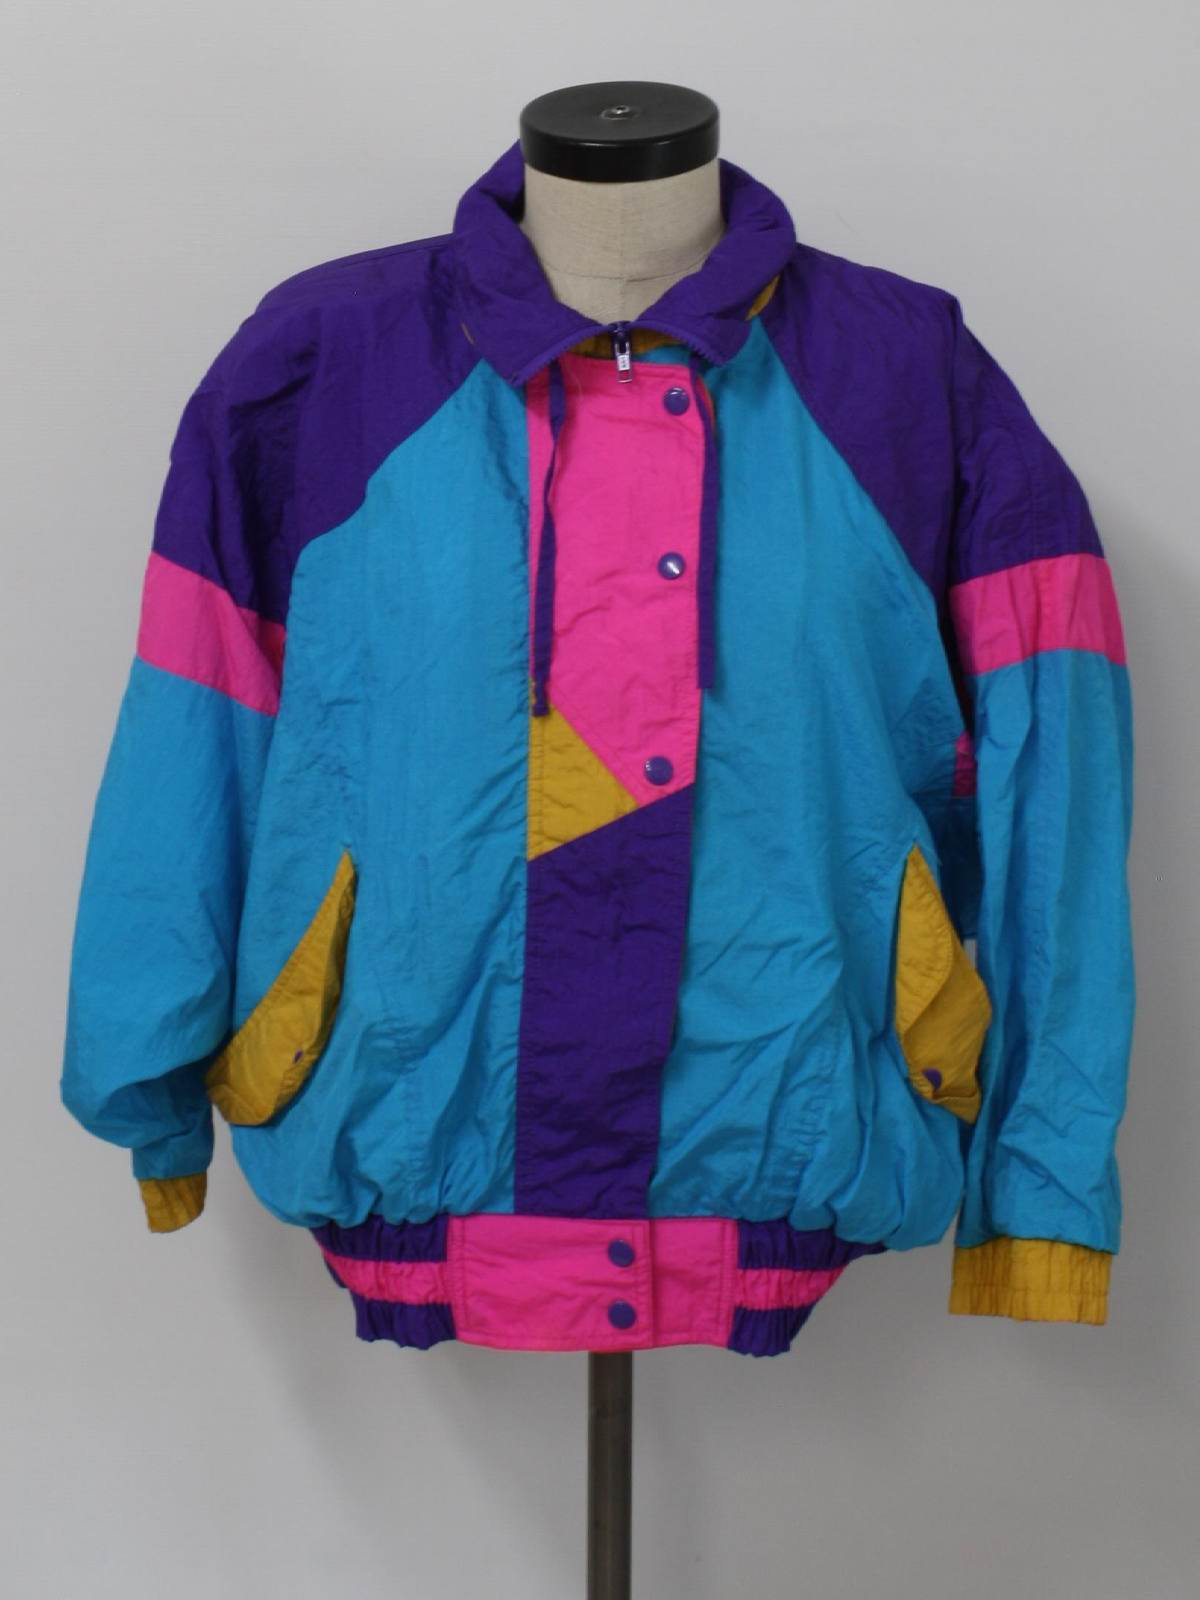 80s Vintage Clothing In The Uk Just Got Easier: Vintage 80s Jacket: 80s -DB Sport- Womens Teal Blue